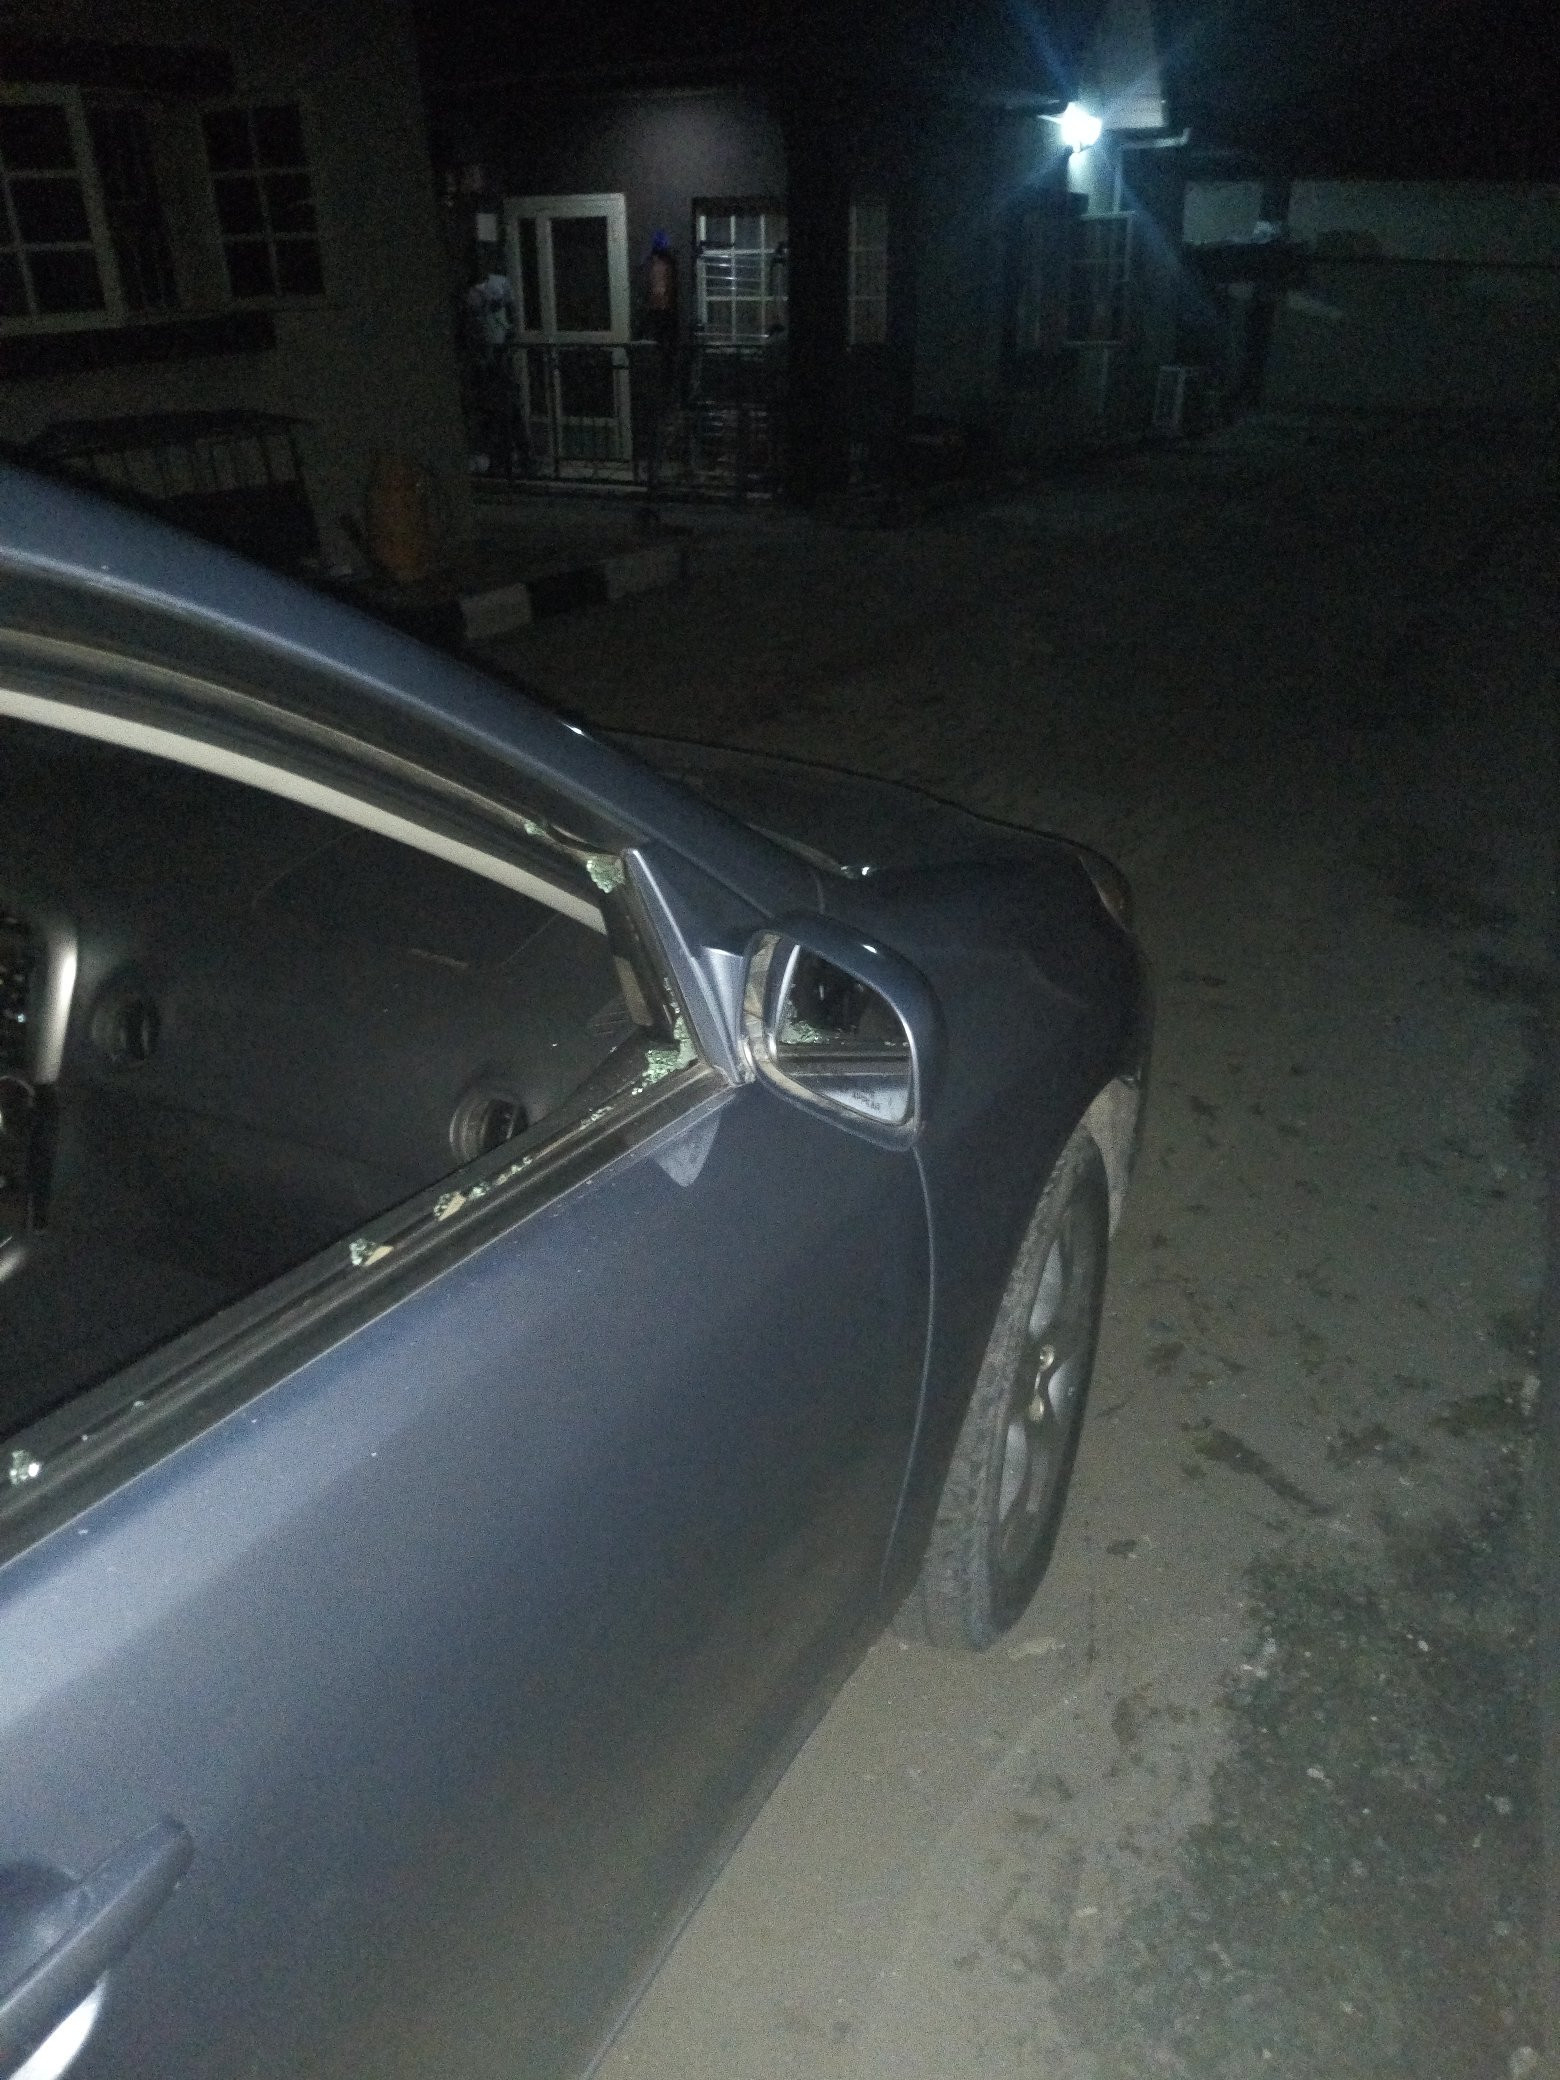 Lagosian narrowly escapes death after robbers shoot at her car on Eko bridge